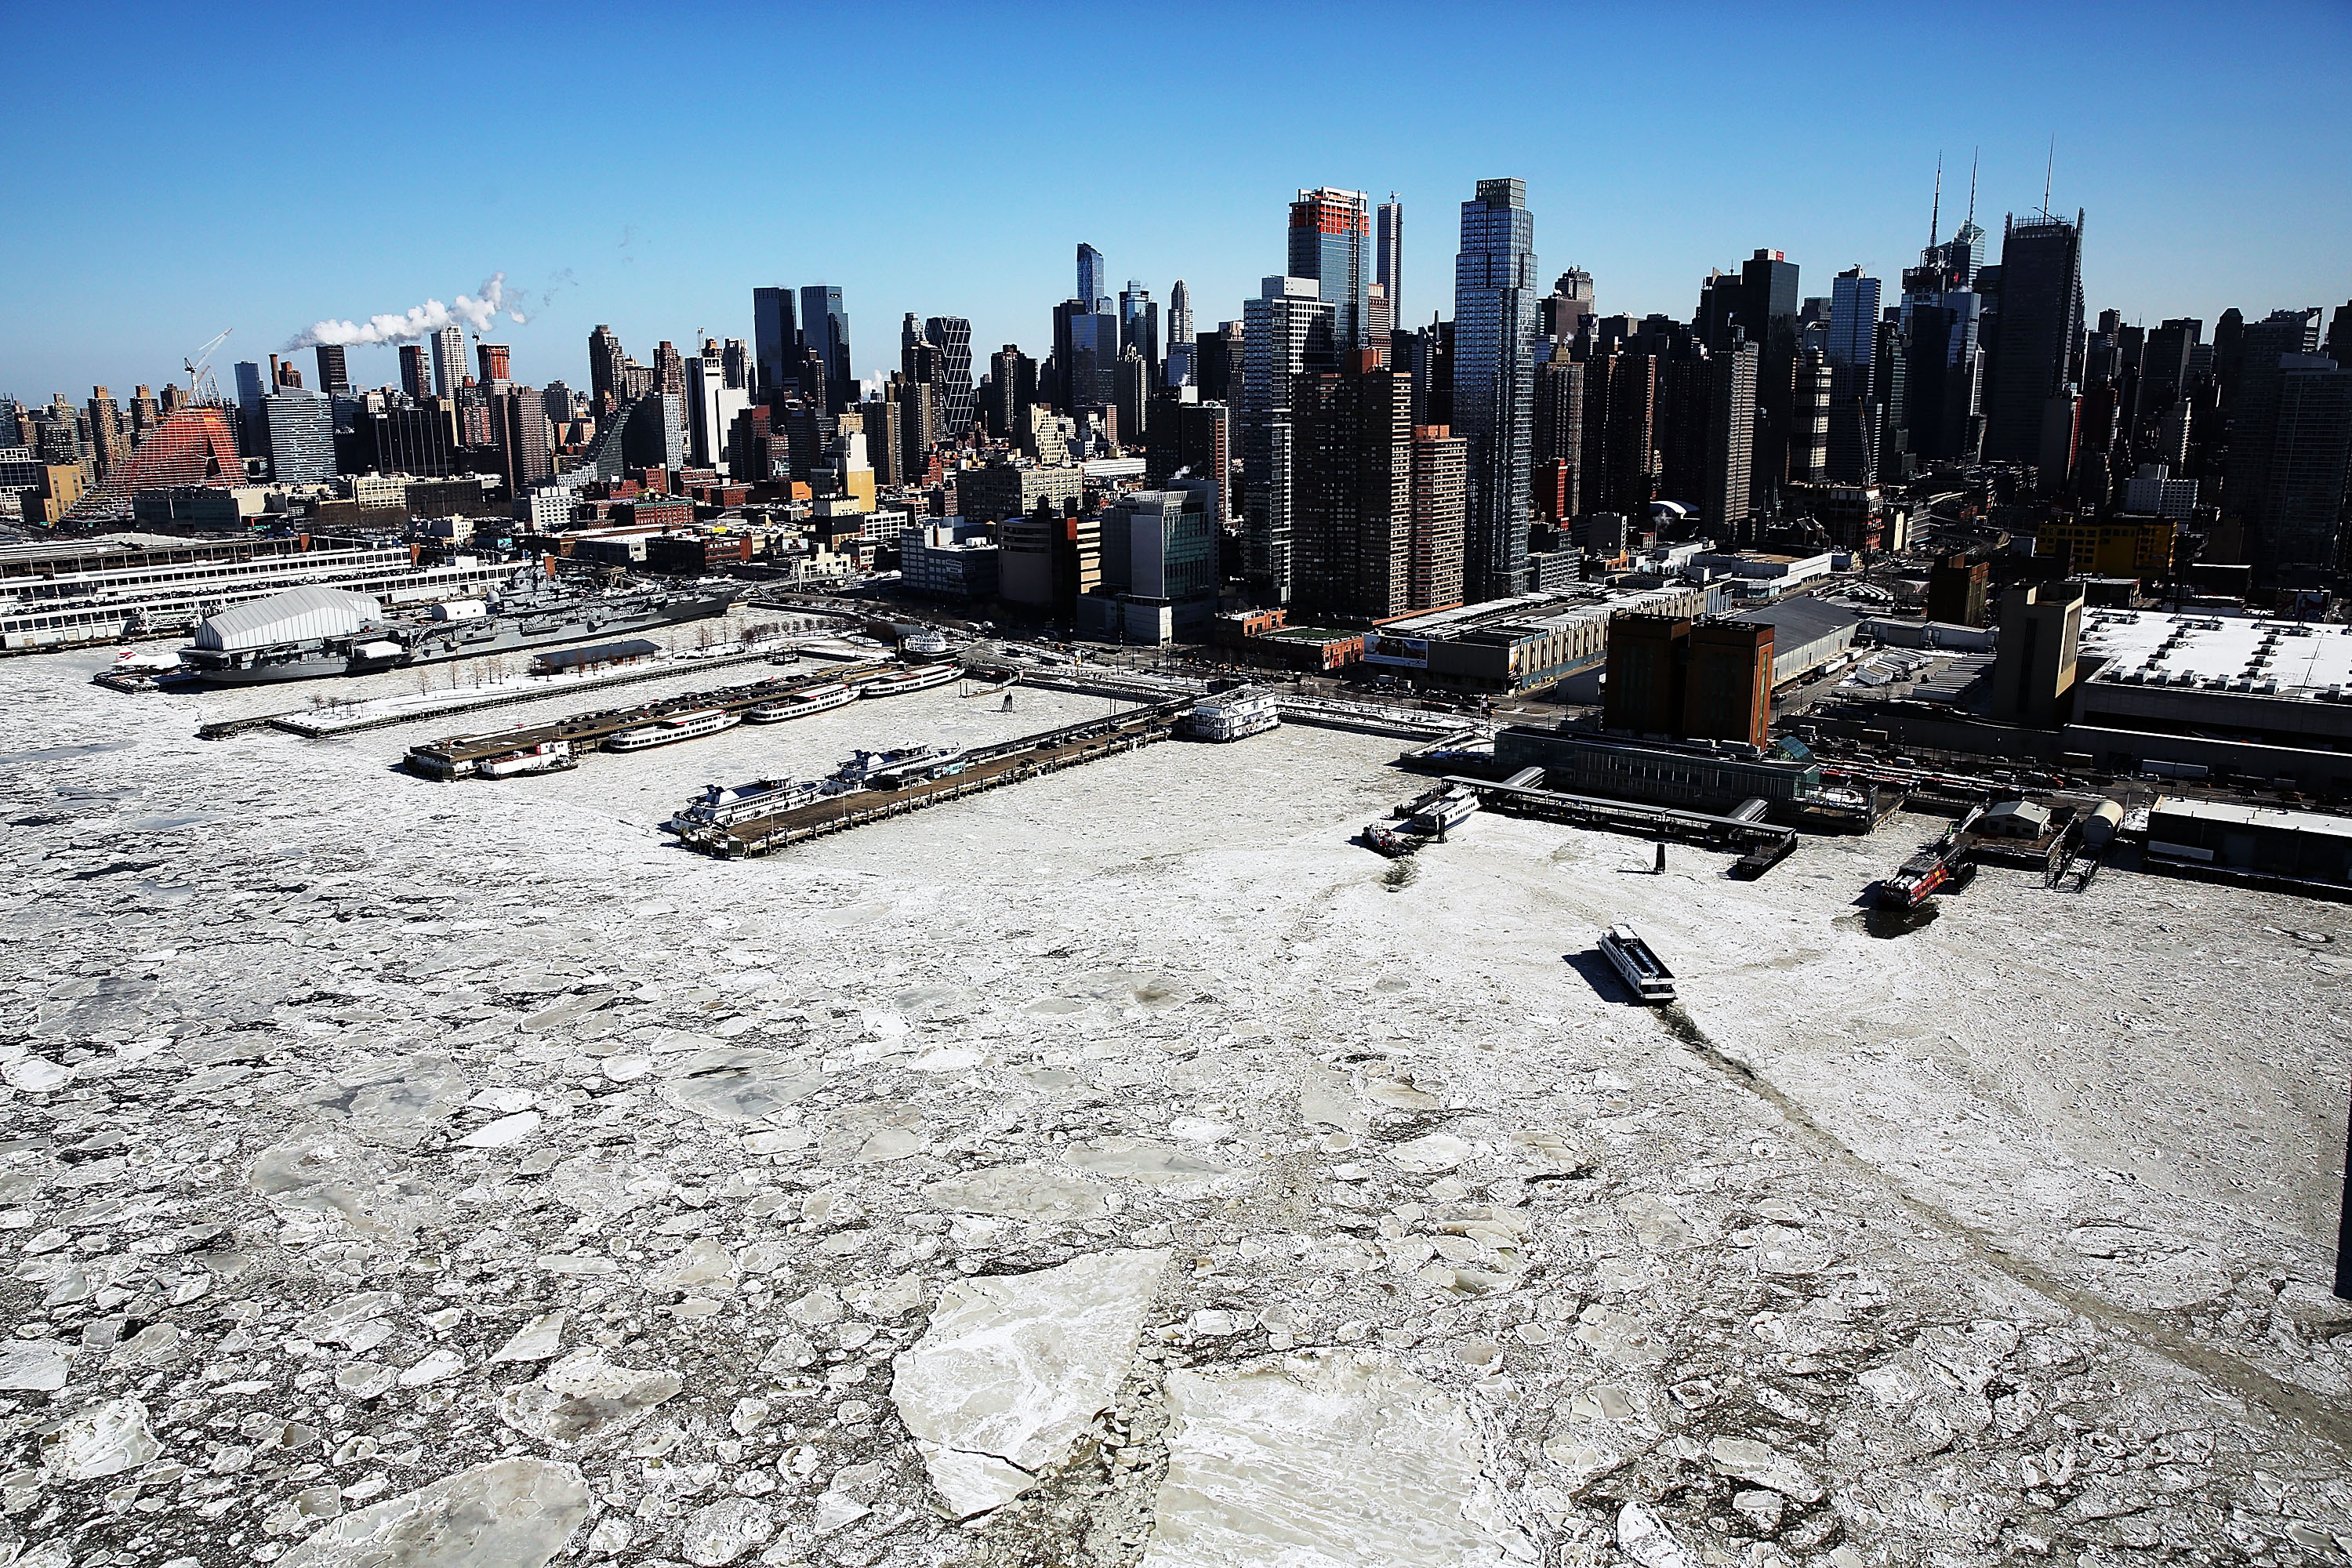 hudson river ferry and ice arctic new york from the air pictures cbs news. Black Bedroom Furniture Sets. Home Design Ideas